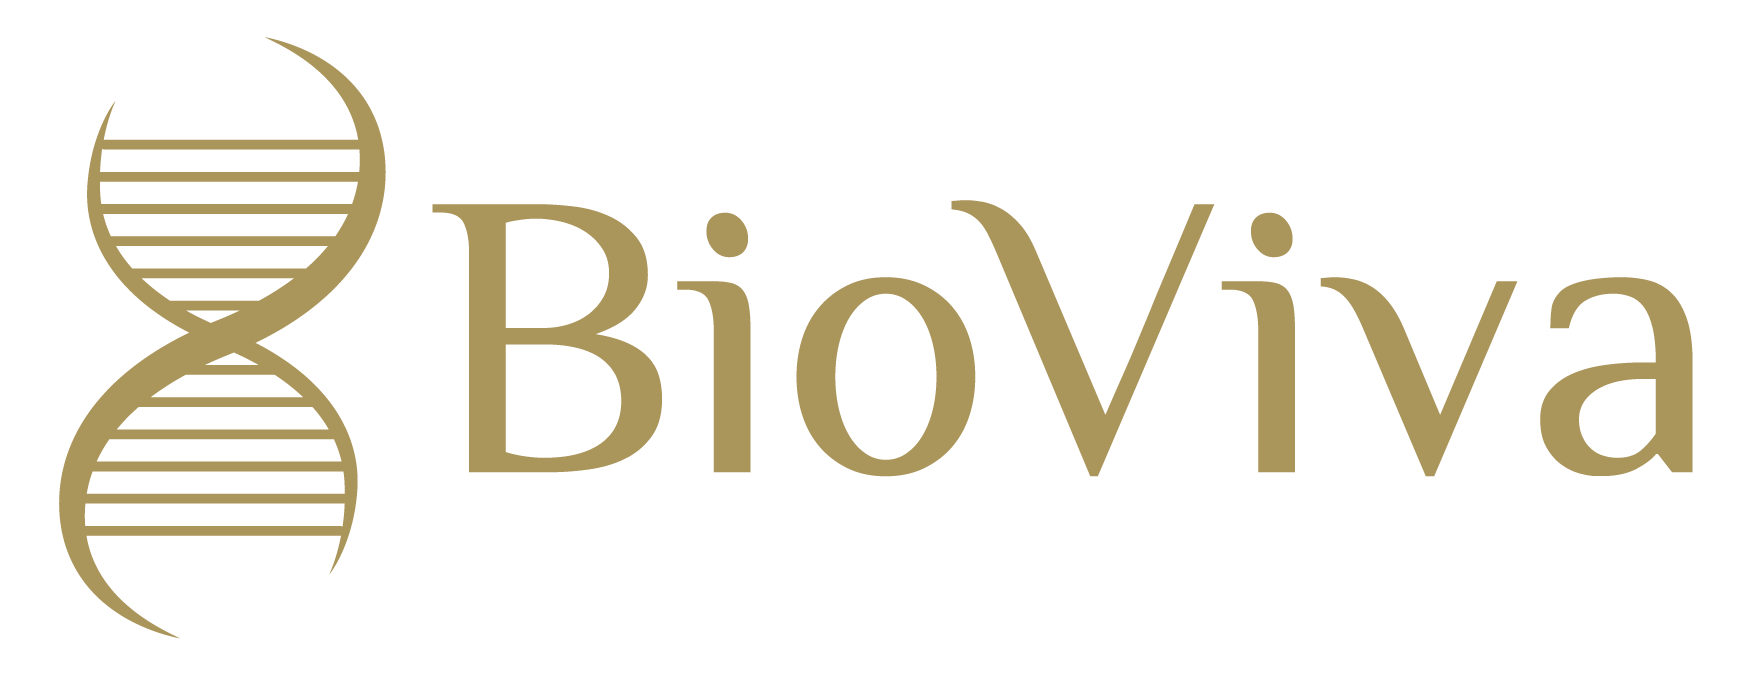 BioViva's Partnership to Make Gene Therapy Accessible and Affordable